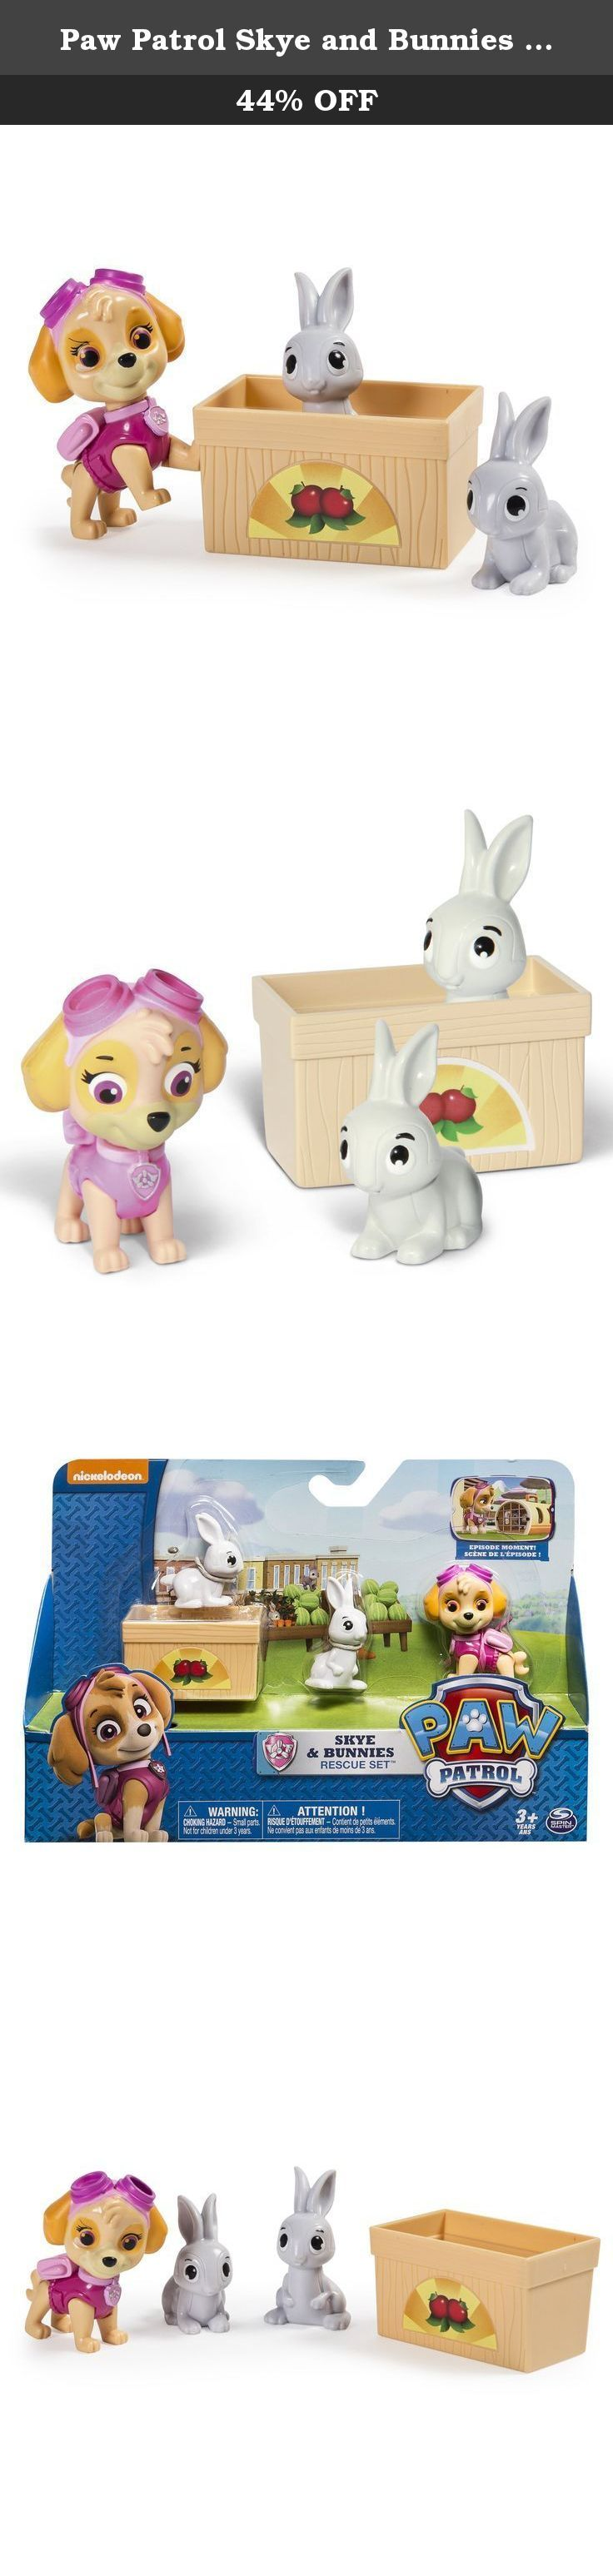 Paw Patrol Skye and Bunnies Rescue Set. This Pups gotta fly! Skye is ready for a rescue! The Bunnies need a helping hand to get to safety. Skye is ready to use her real moving legs and rescue skills to guide the bunnies to a safe location. They can even cuddle up in their cute vegetable box accessory. Discover even more Adventure Bay rescue action with Rubble, Marshall and Chase Rescue Sets. No job is too big, no pup is too small! Bring home the Skye and Bunnies Rescue and re-create all…